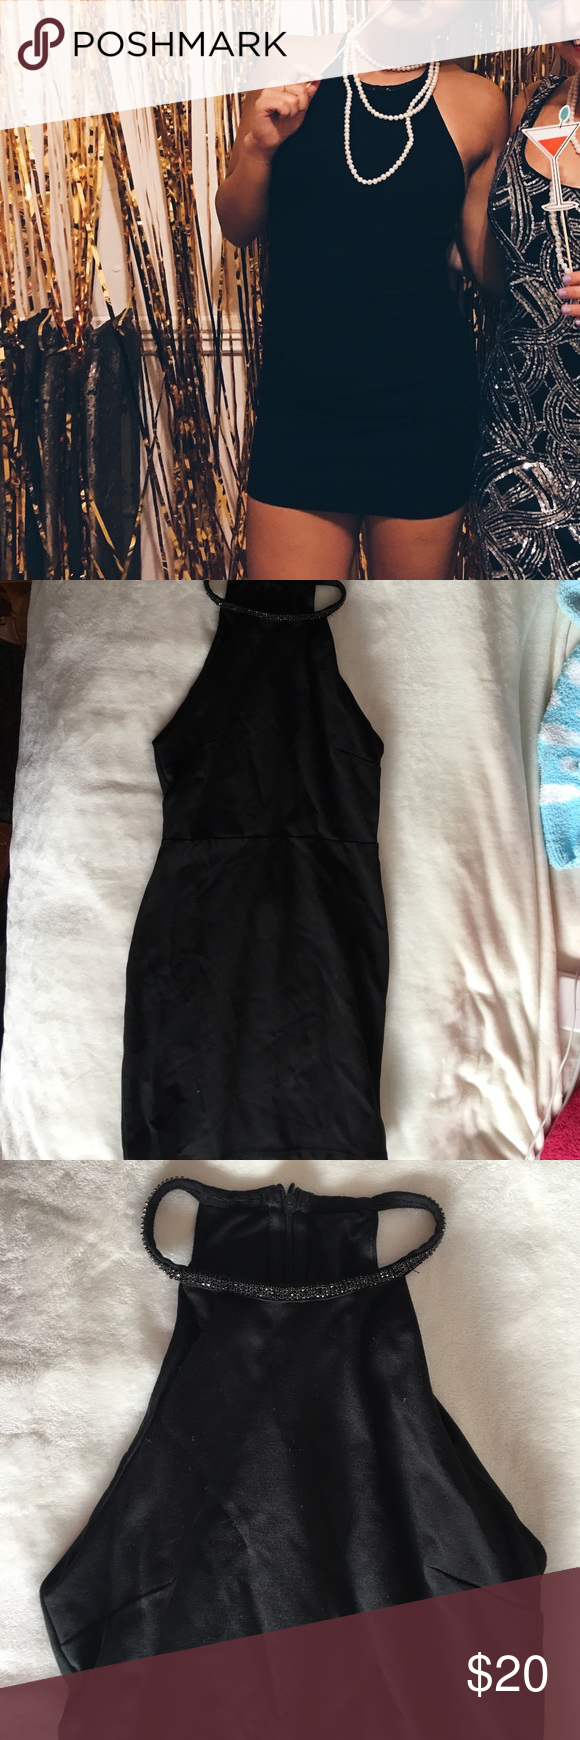 Barely worn forever tight black dress w jewels st dresses